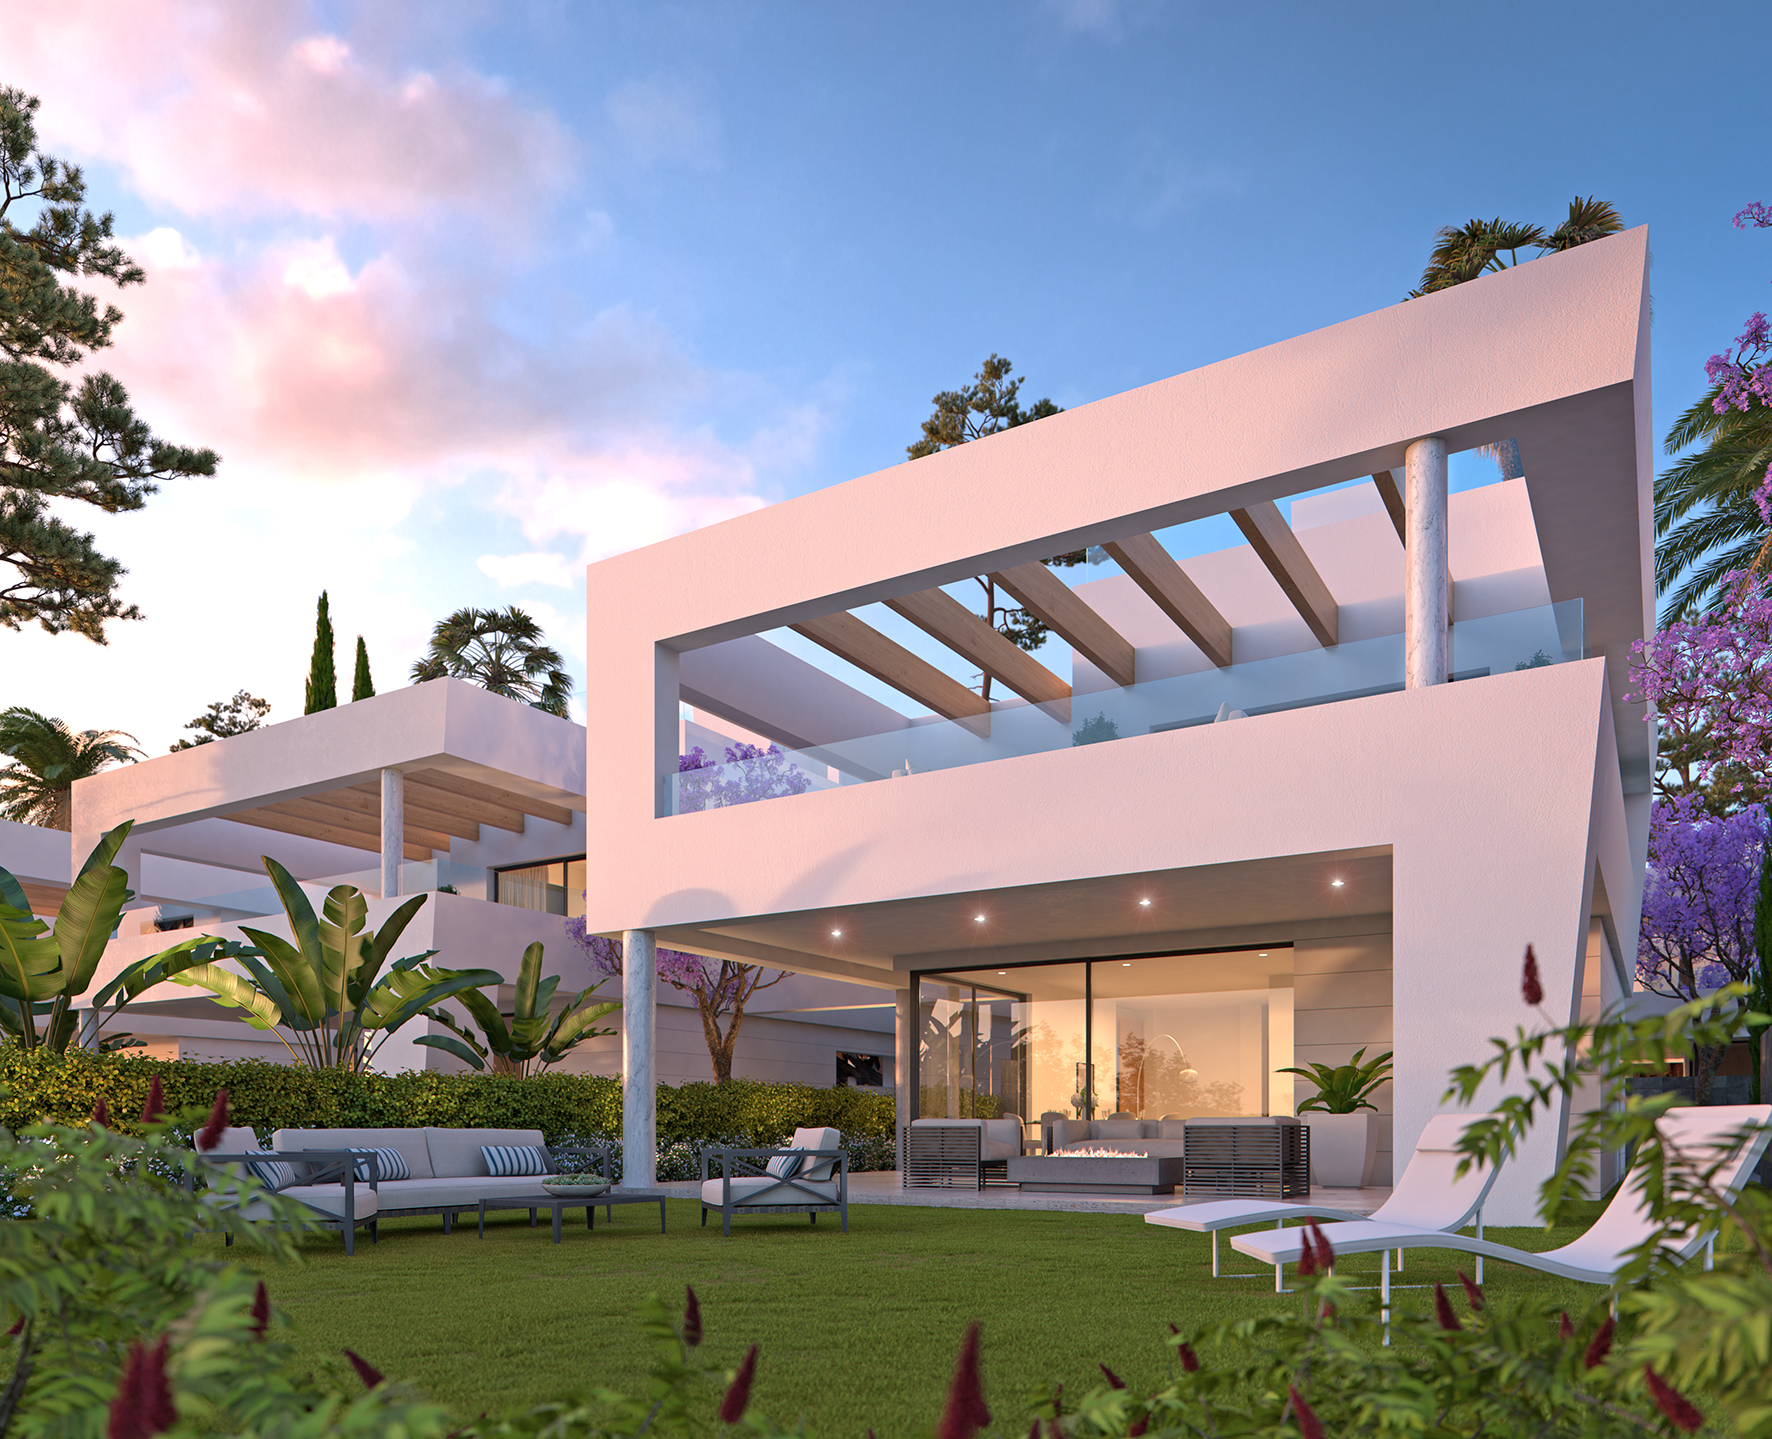 Luxury modern homes in San Pedro de Alcantara